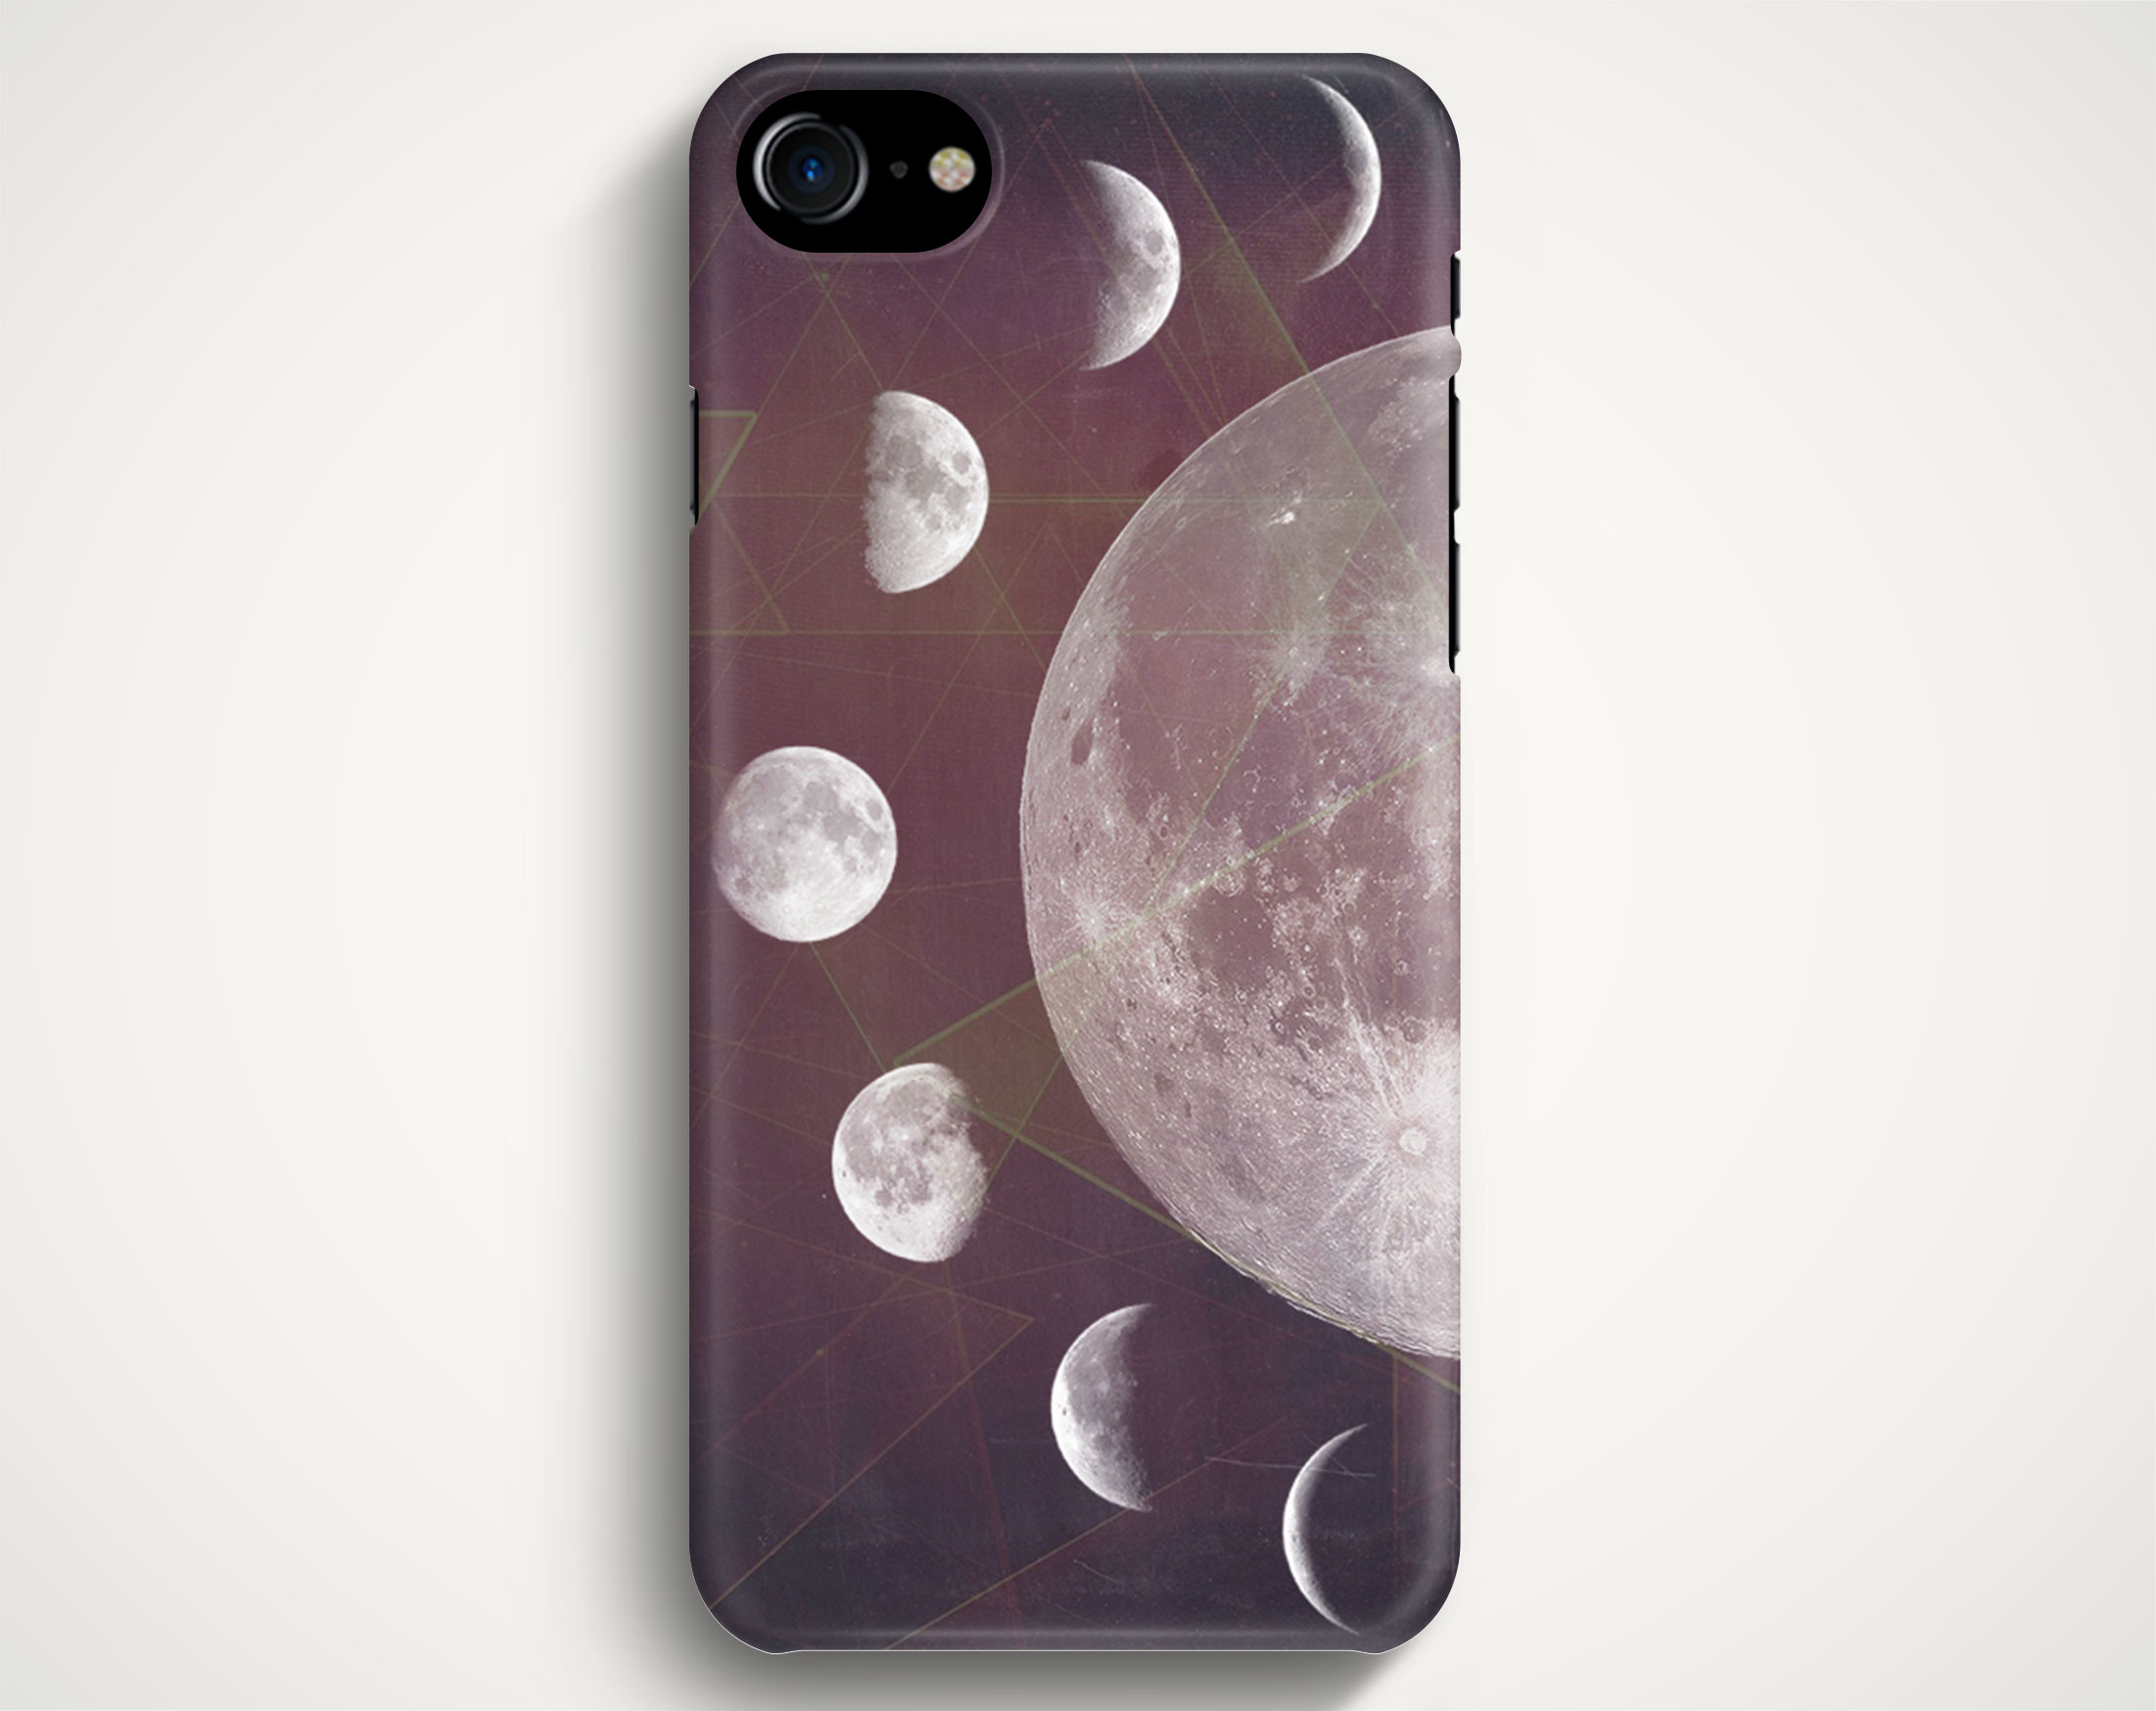 new products 735dc 3e094 Moon Phases Geometric Case For IPhone 7 IPhone 7 Plus Samsung Galaxy S8  Galaxy S7 Galaxy A3 Galaxy A5 Galaxy A7 LG G6 LG G5 HTC 10